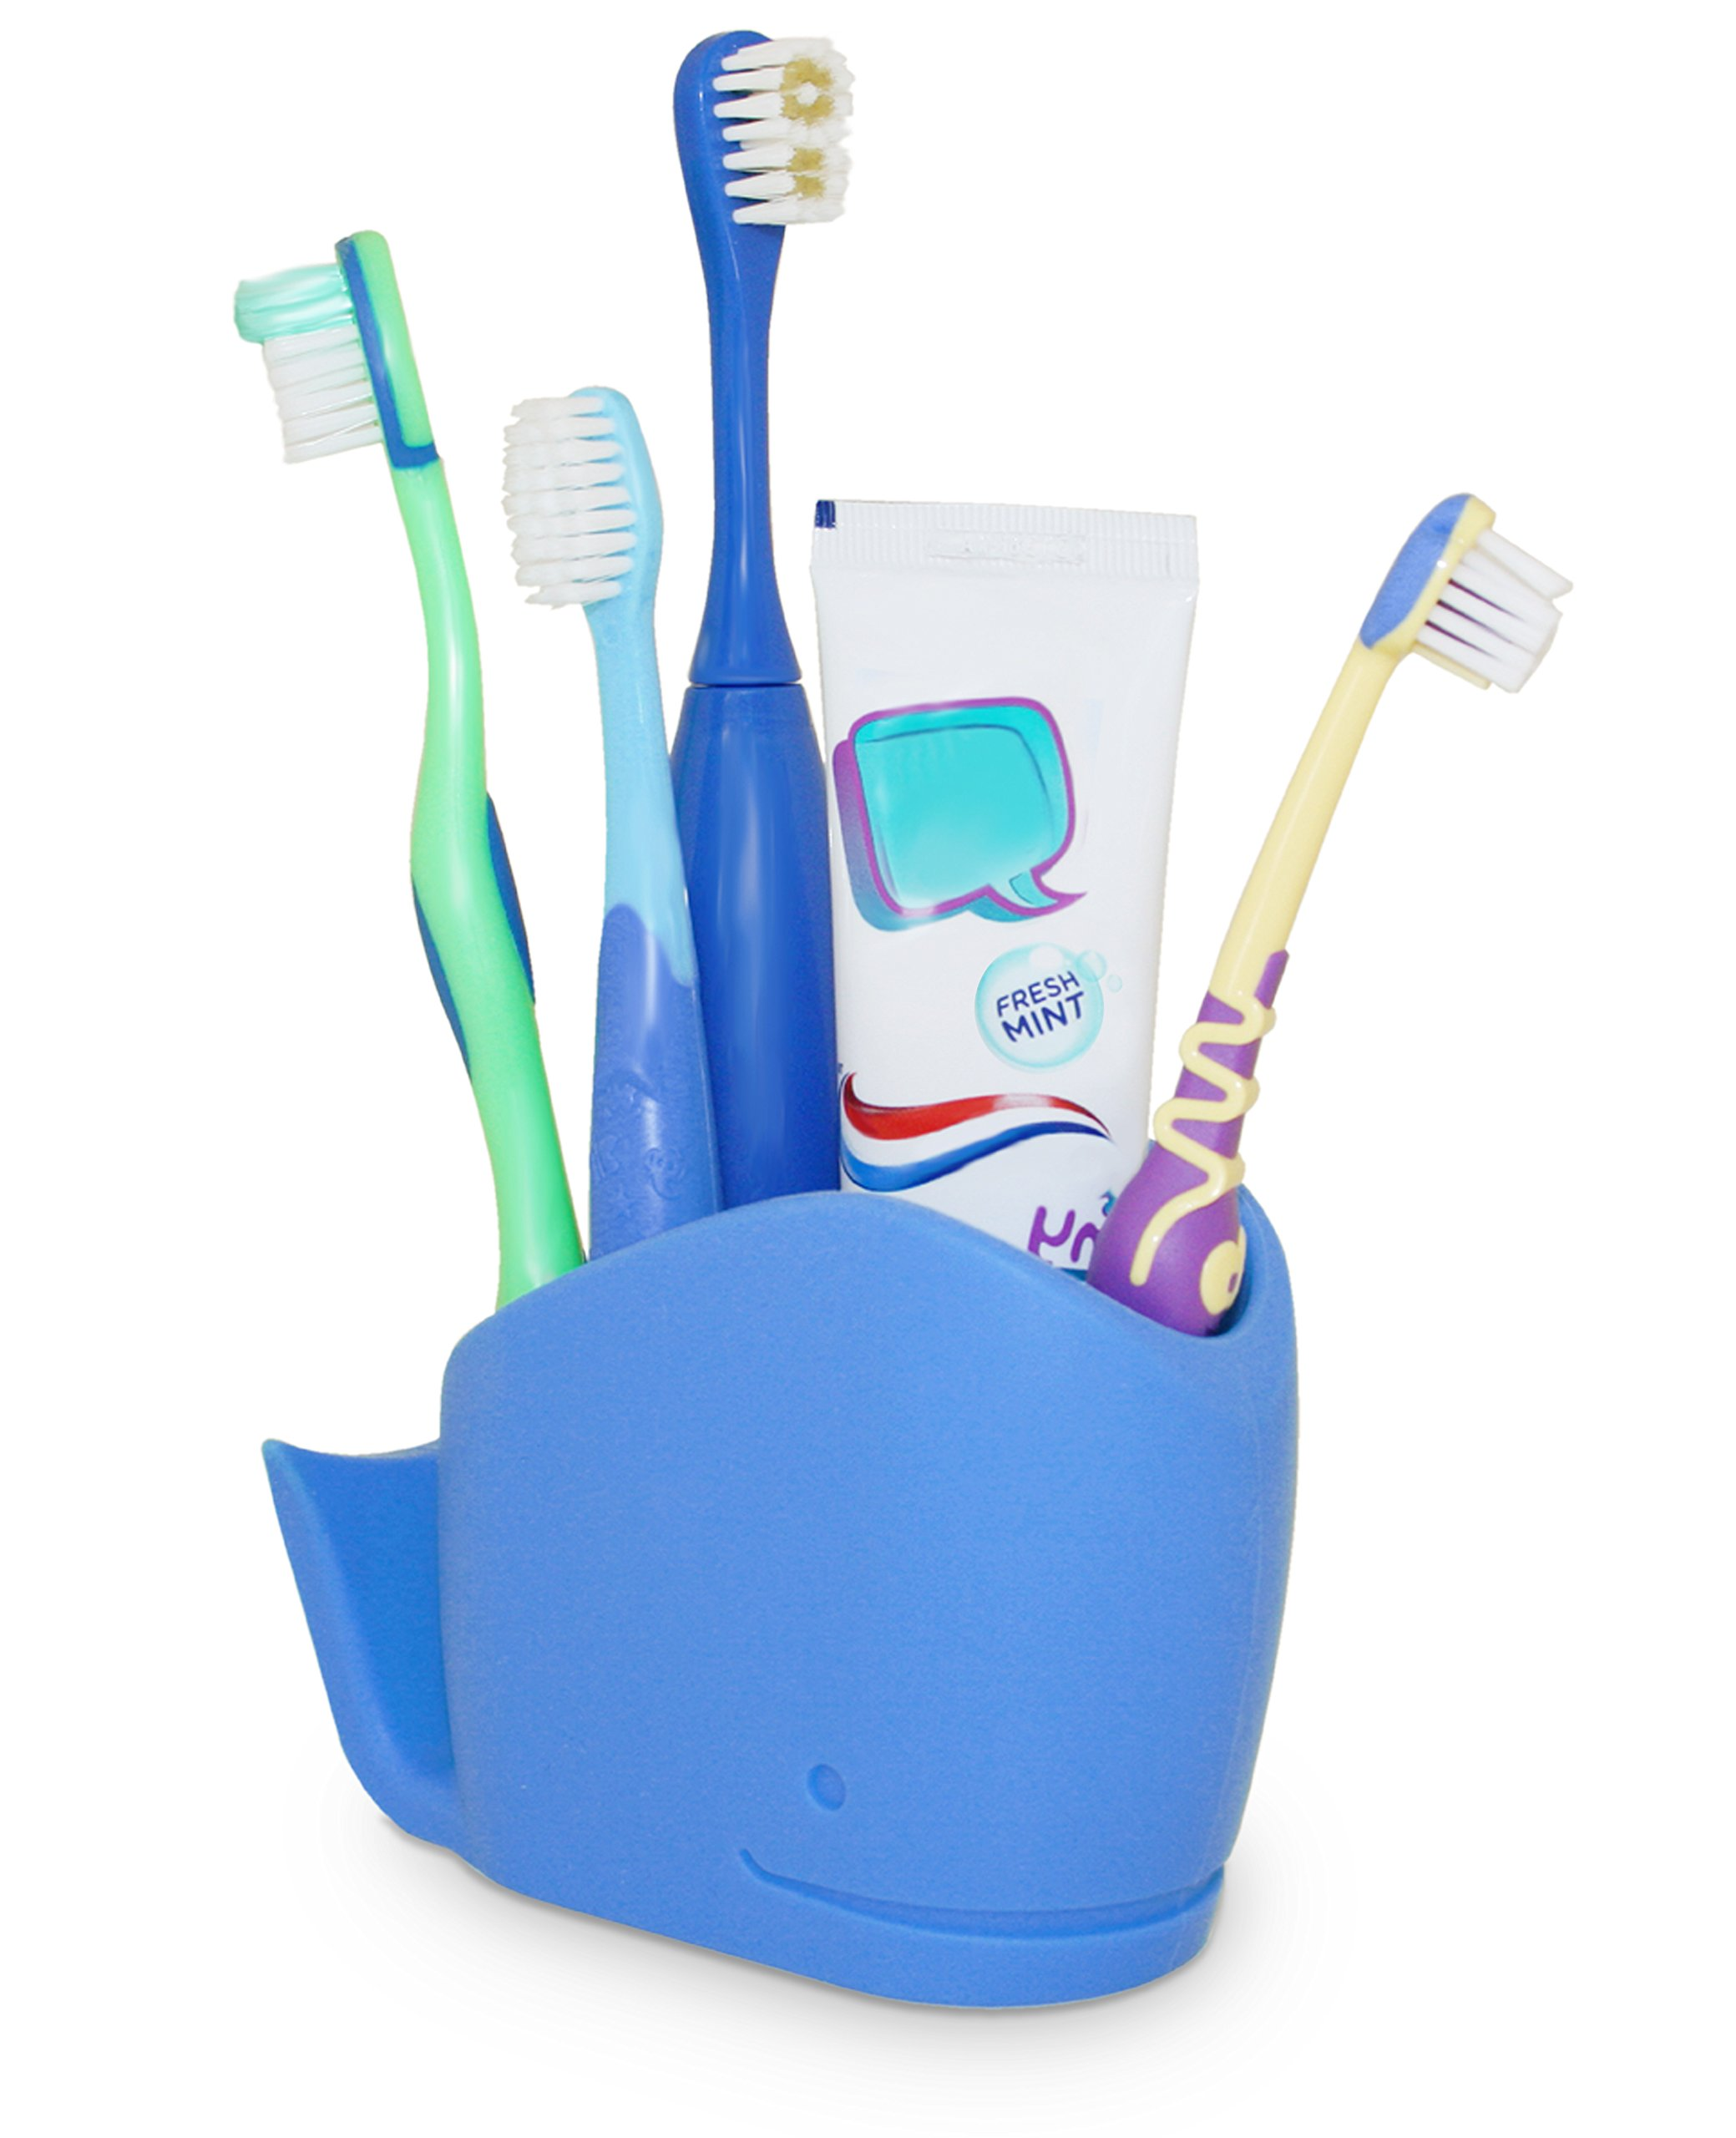 j-me original design Toothbrush & Toothpaste holder - Animal Bathroom Tidy, Wilson The Whale, Blue